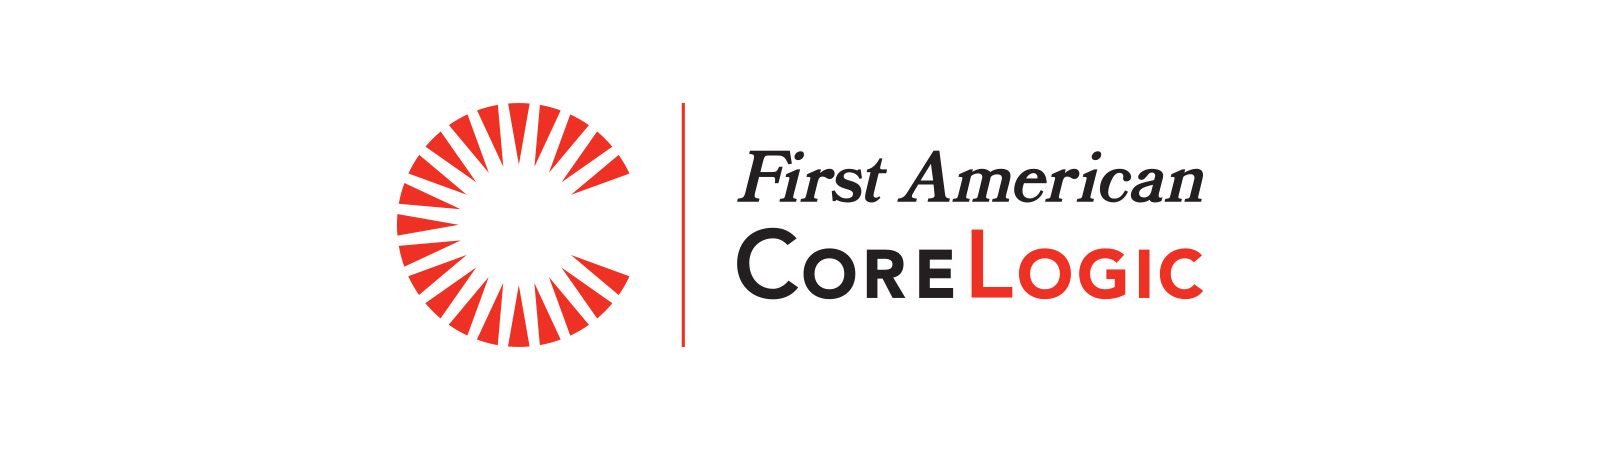 First American Core Logic Logo Image